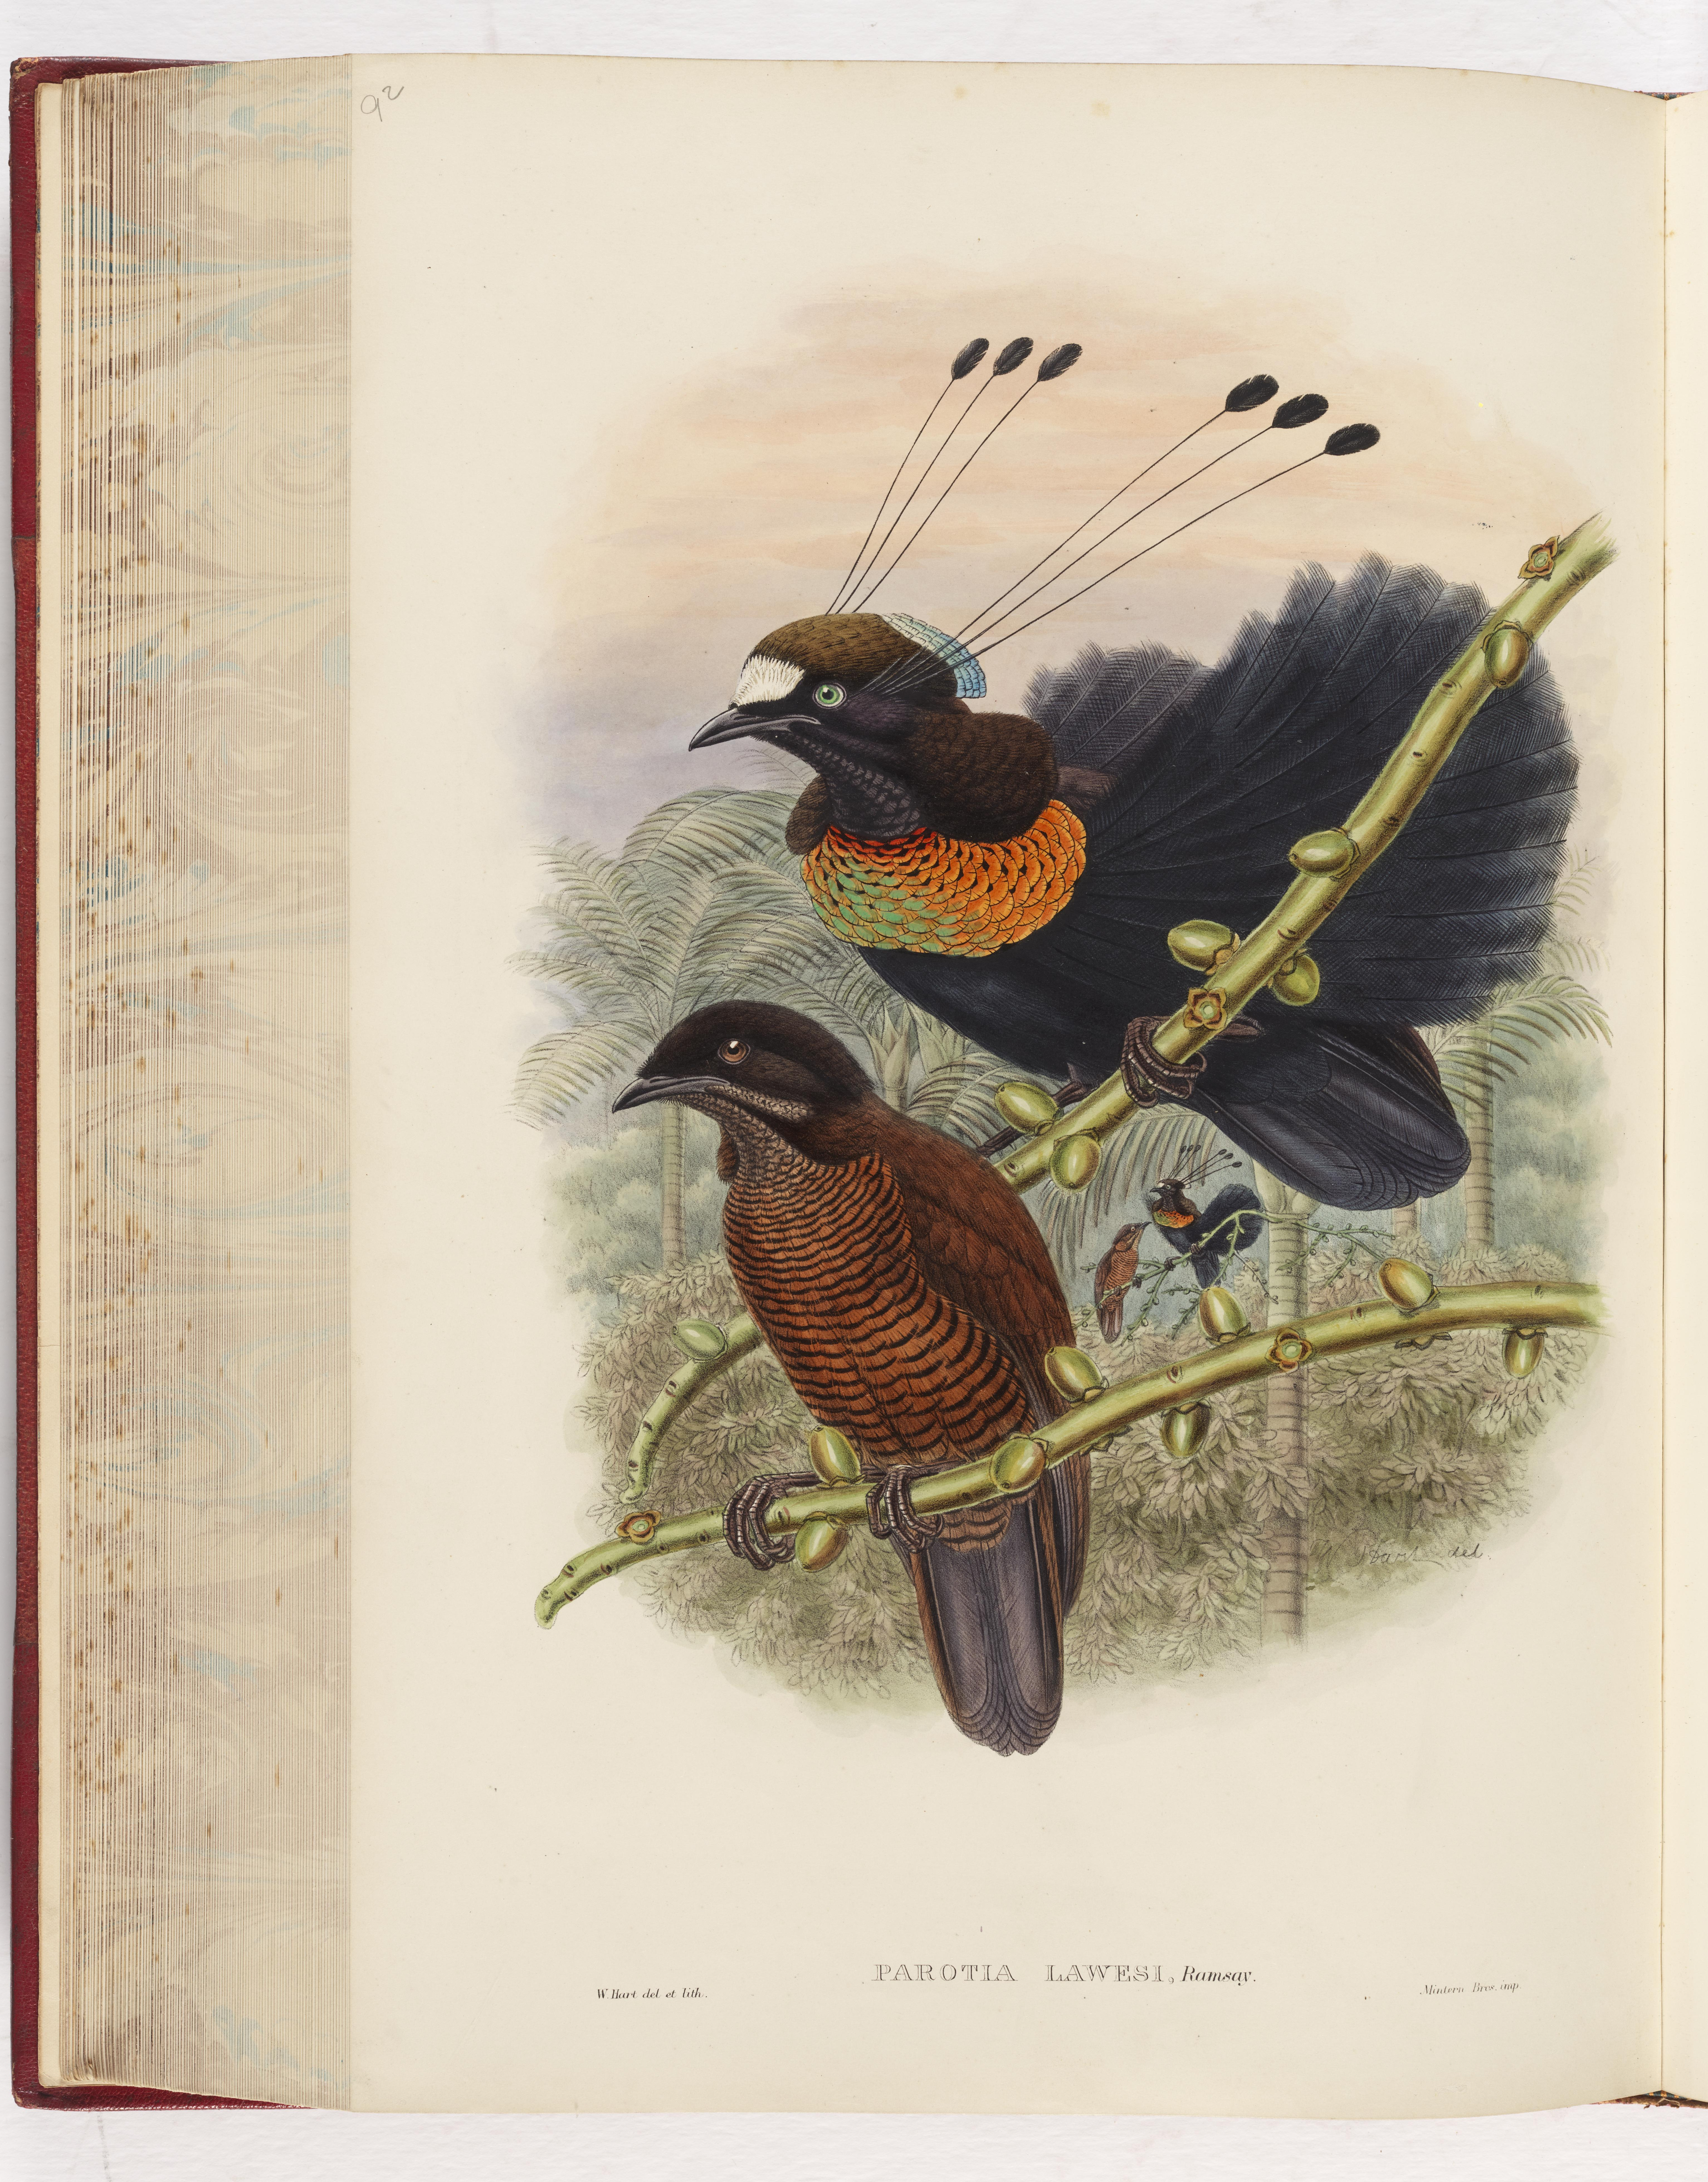 Parotia lawesi, Lawes Bird of Paradise from John Gould's the Birds of New Guinea and the adjacent Papuan islands, London, 1875-1888